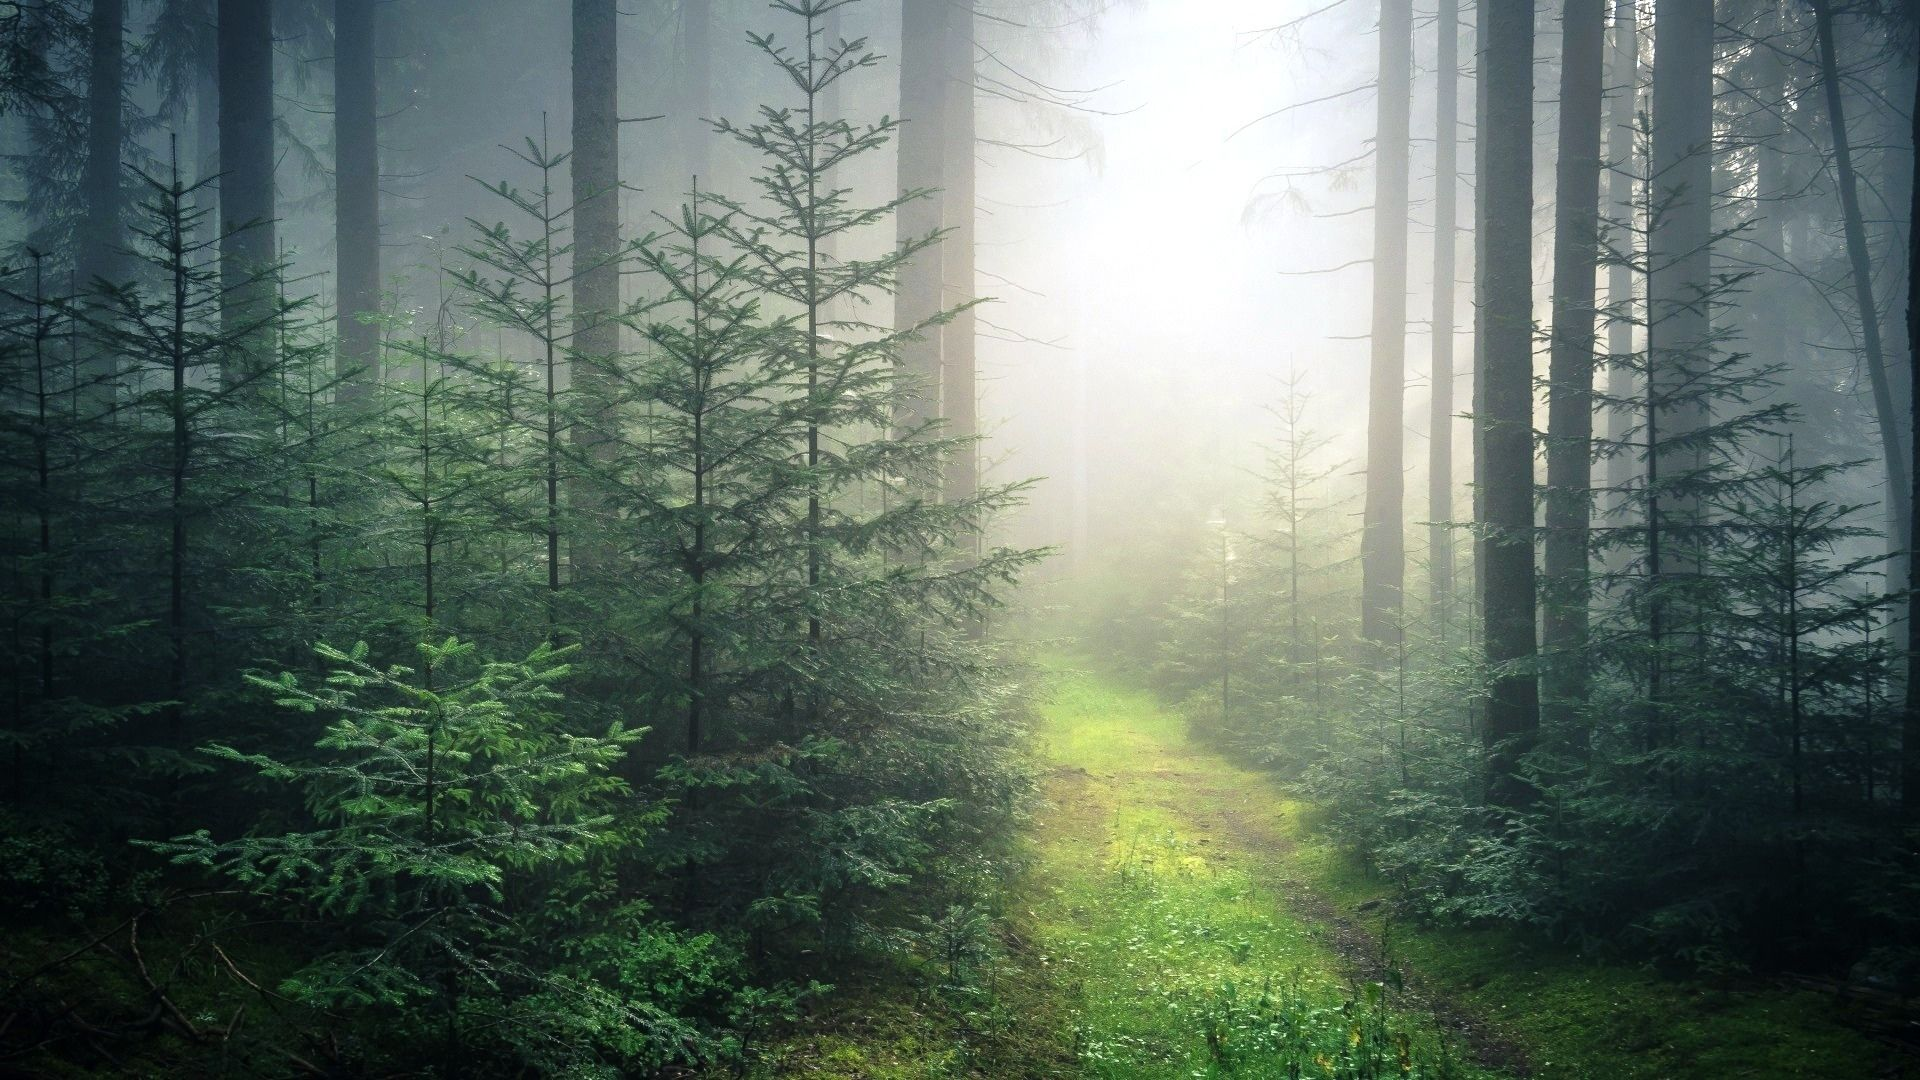 Foggy Forest wallpaper image hd